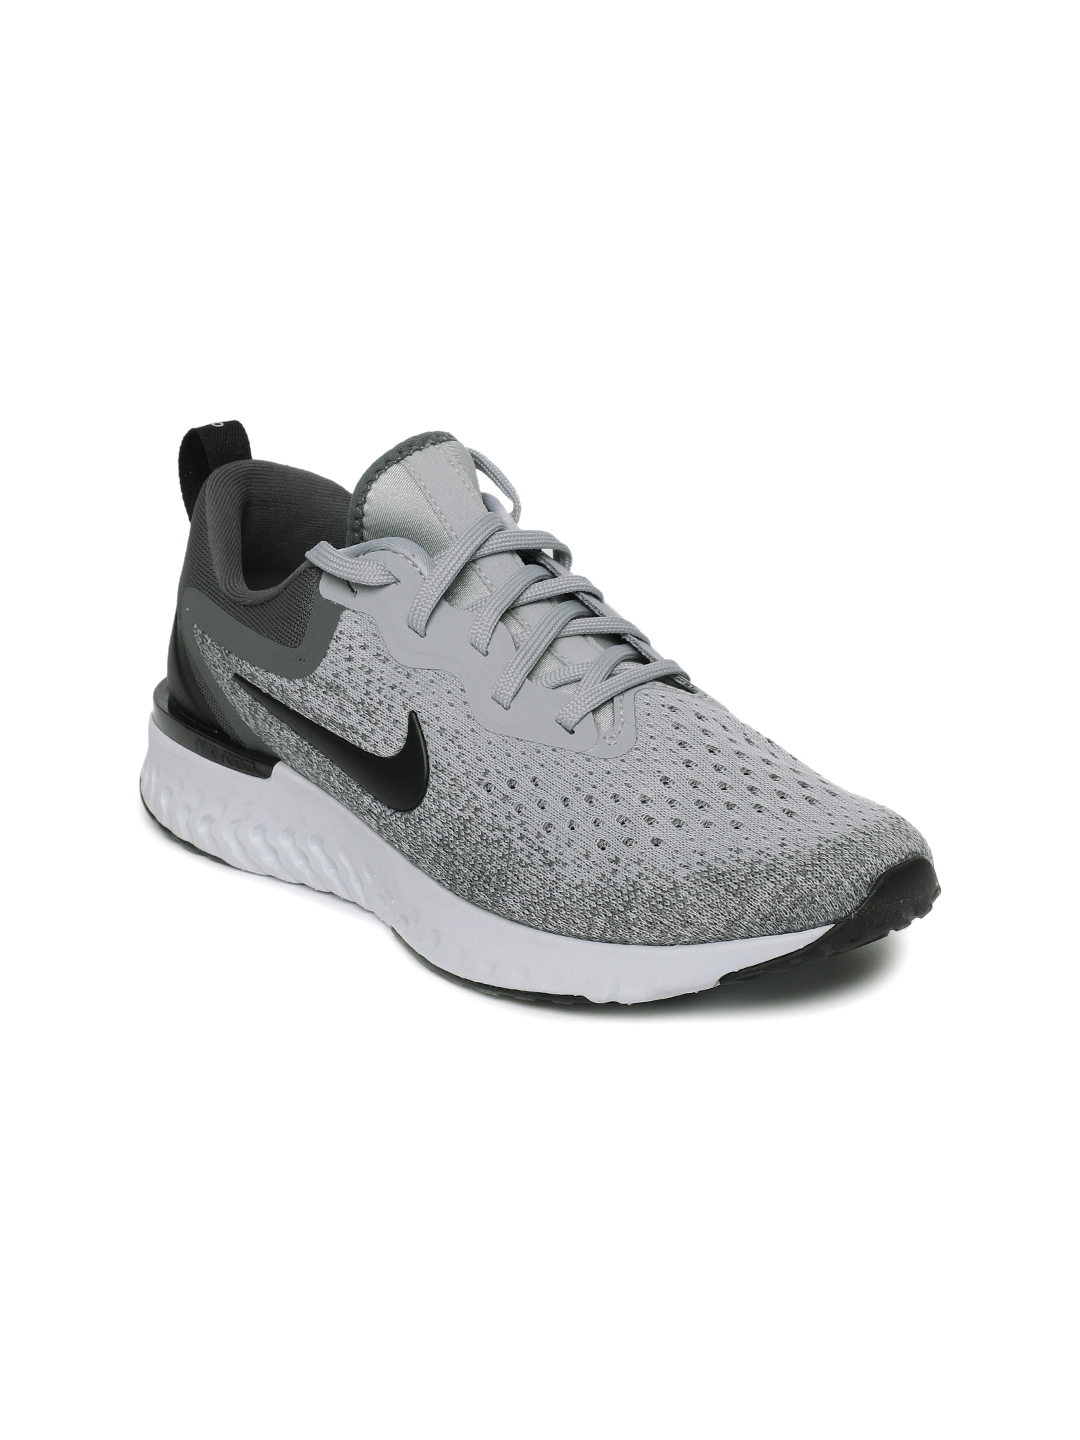 47facdef88bdd Buy Nike Women Grey   Black Odyssey React Running Shoes - Sports ...